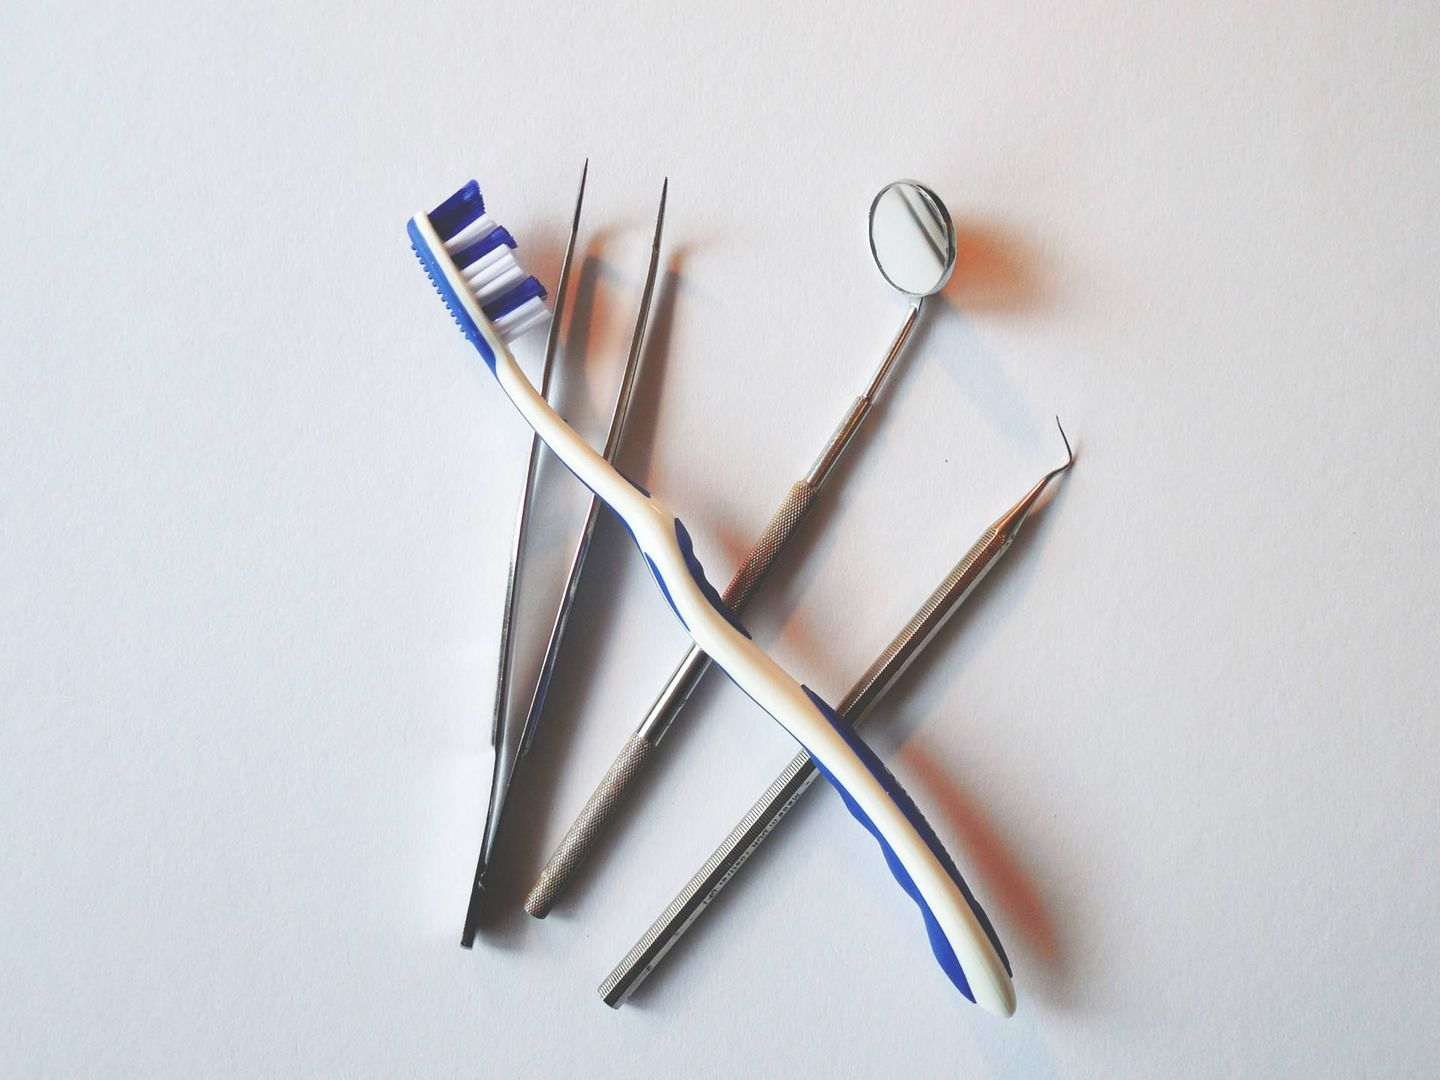 6 simple tips to prepare your child for his first dental appointment dentist's instruments